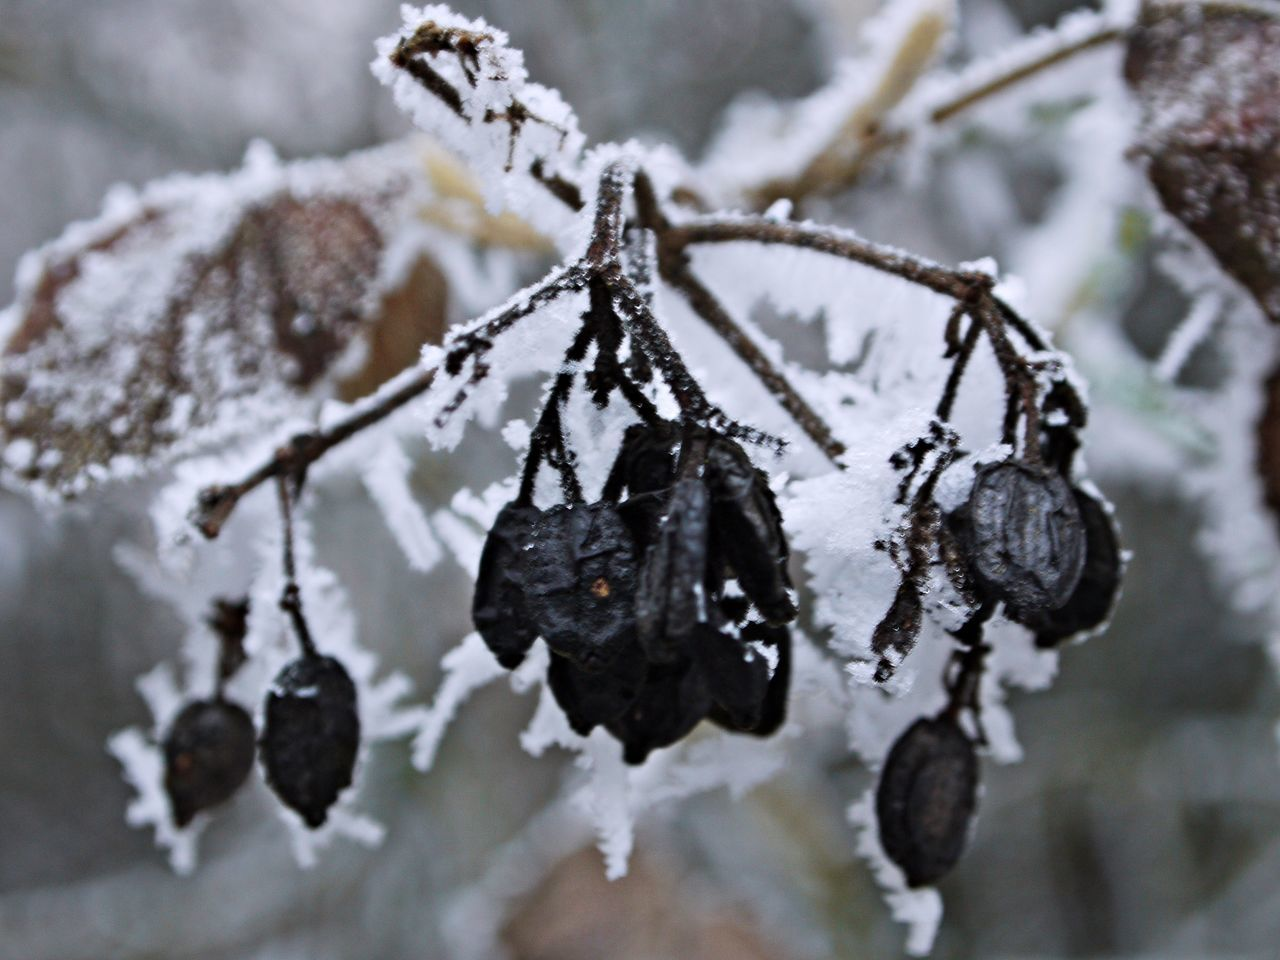 Beauty In Nature Branch Close-up Cold Temperature Day Frozen Frozen Fruits Ice Ice Crystals Nature No People Outdoors Snow Tree Water Weather Winter